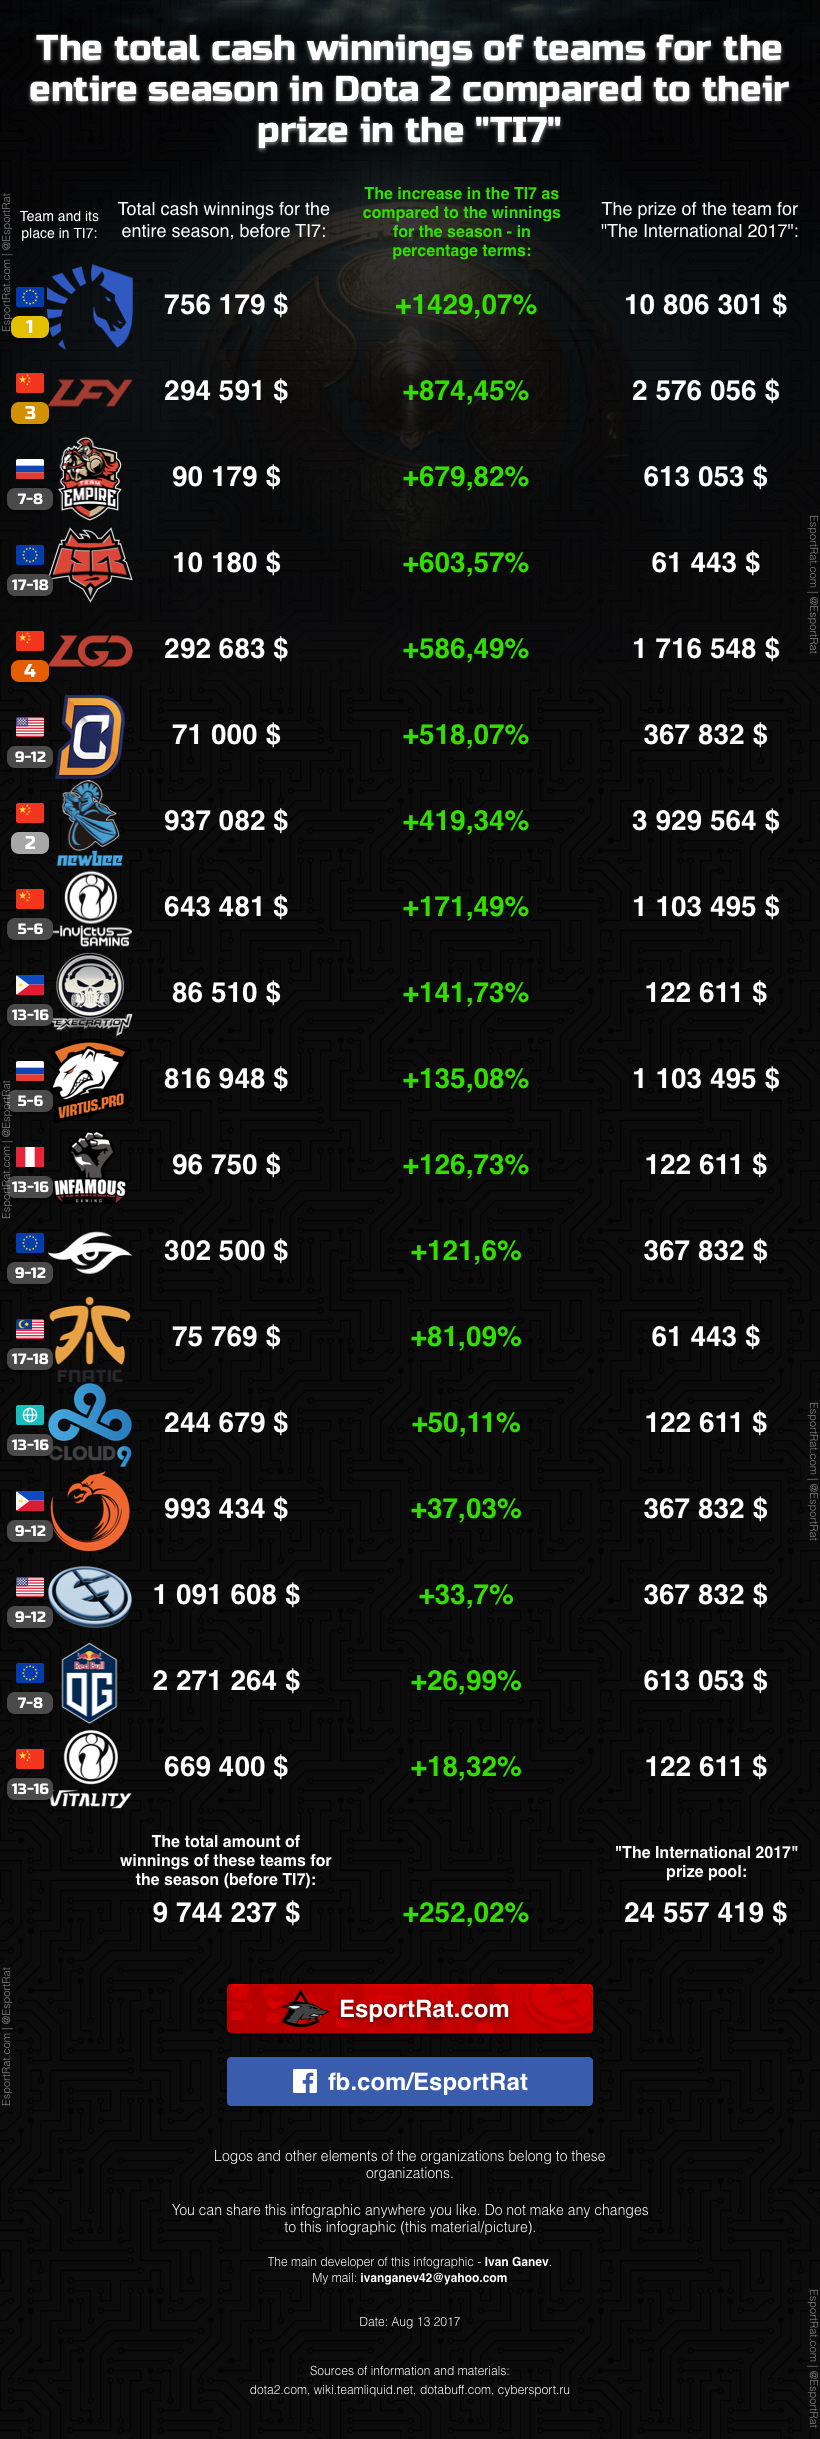 """Infographic: The total cash winnings of teams for the entire season in Dota 2 compared to their prize in the """"TI7"""""""